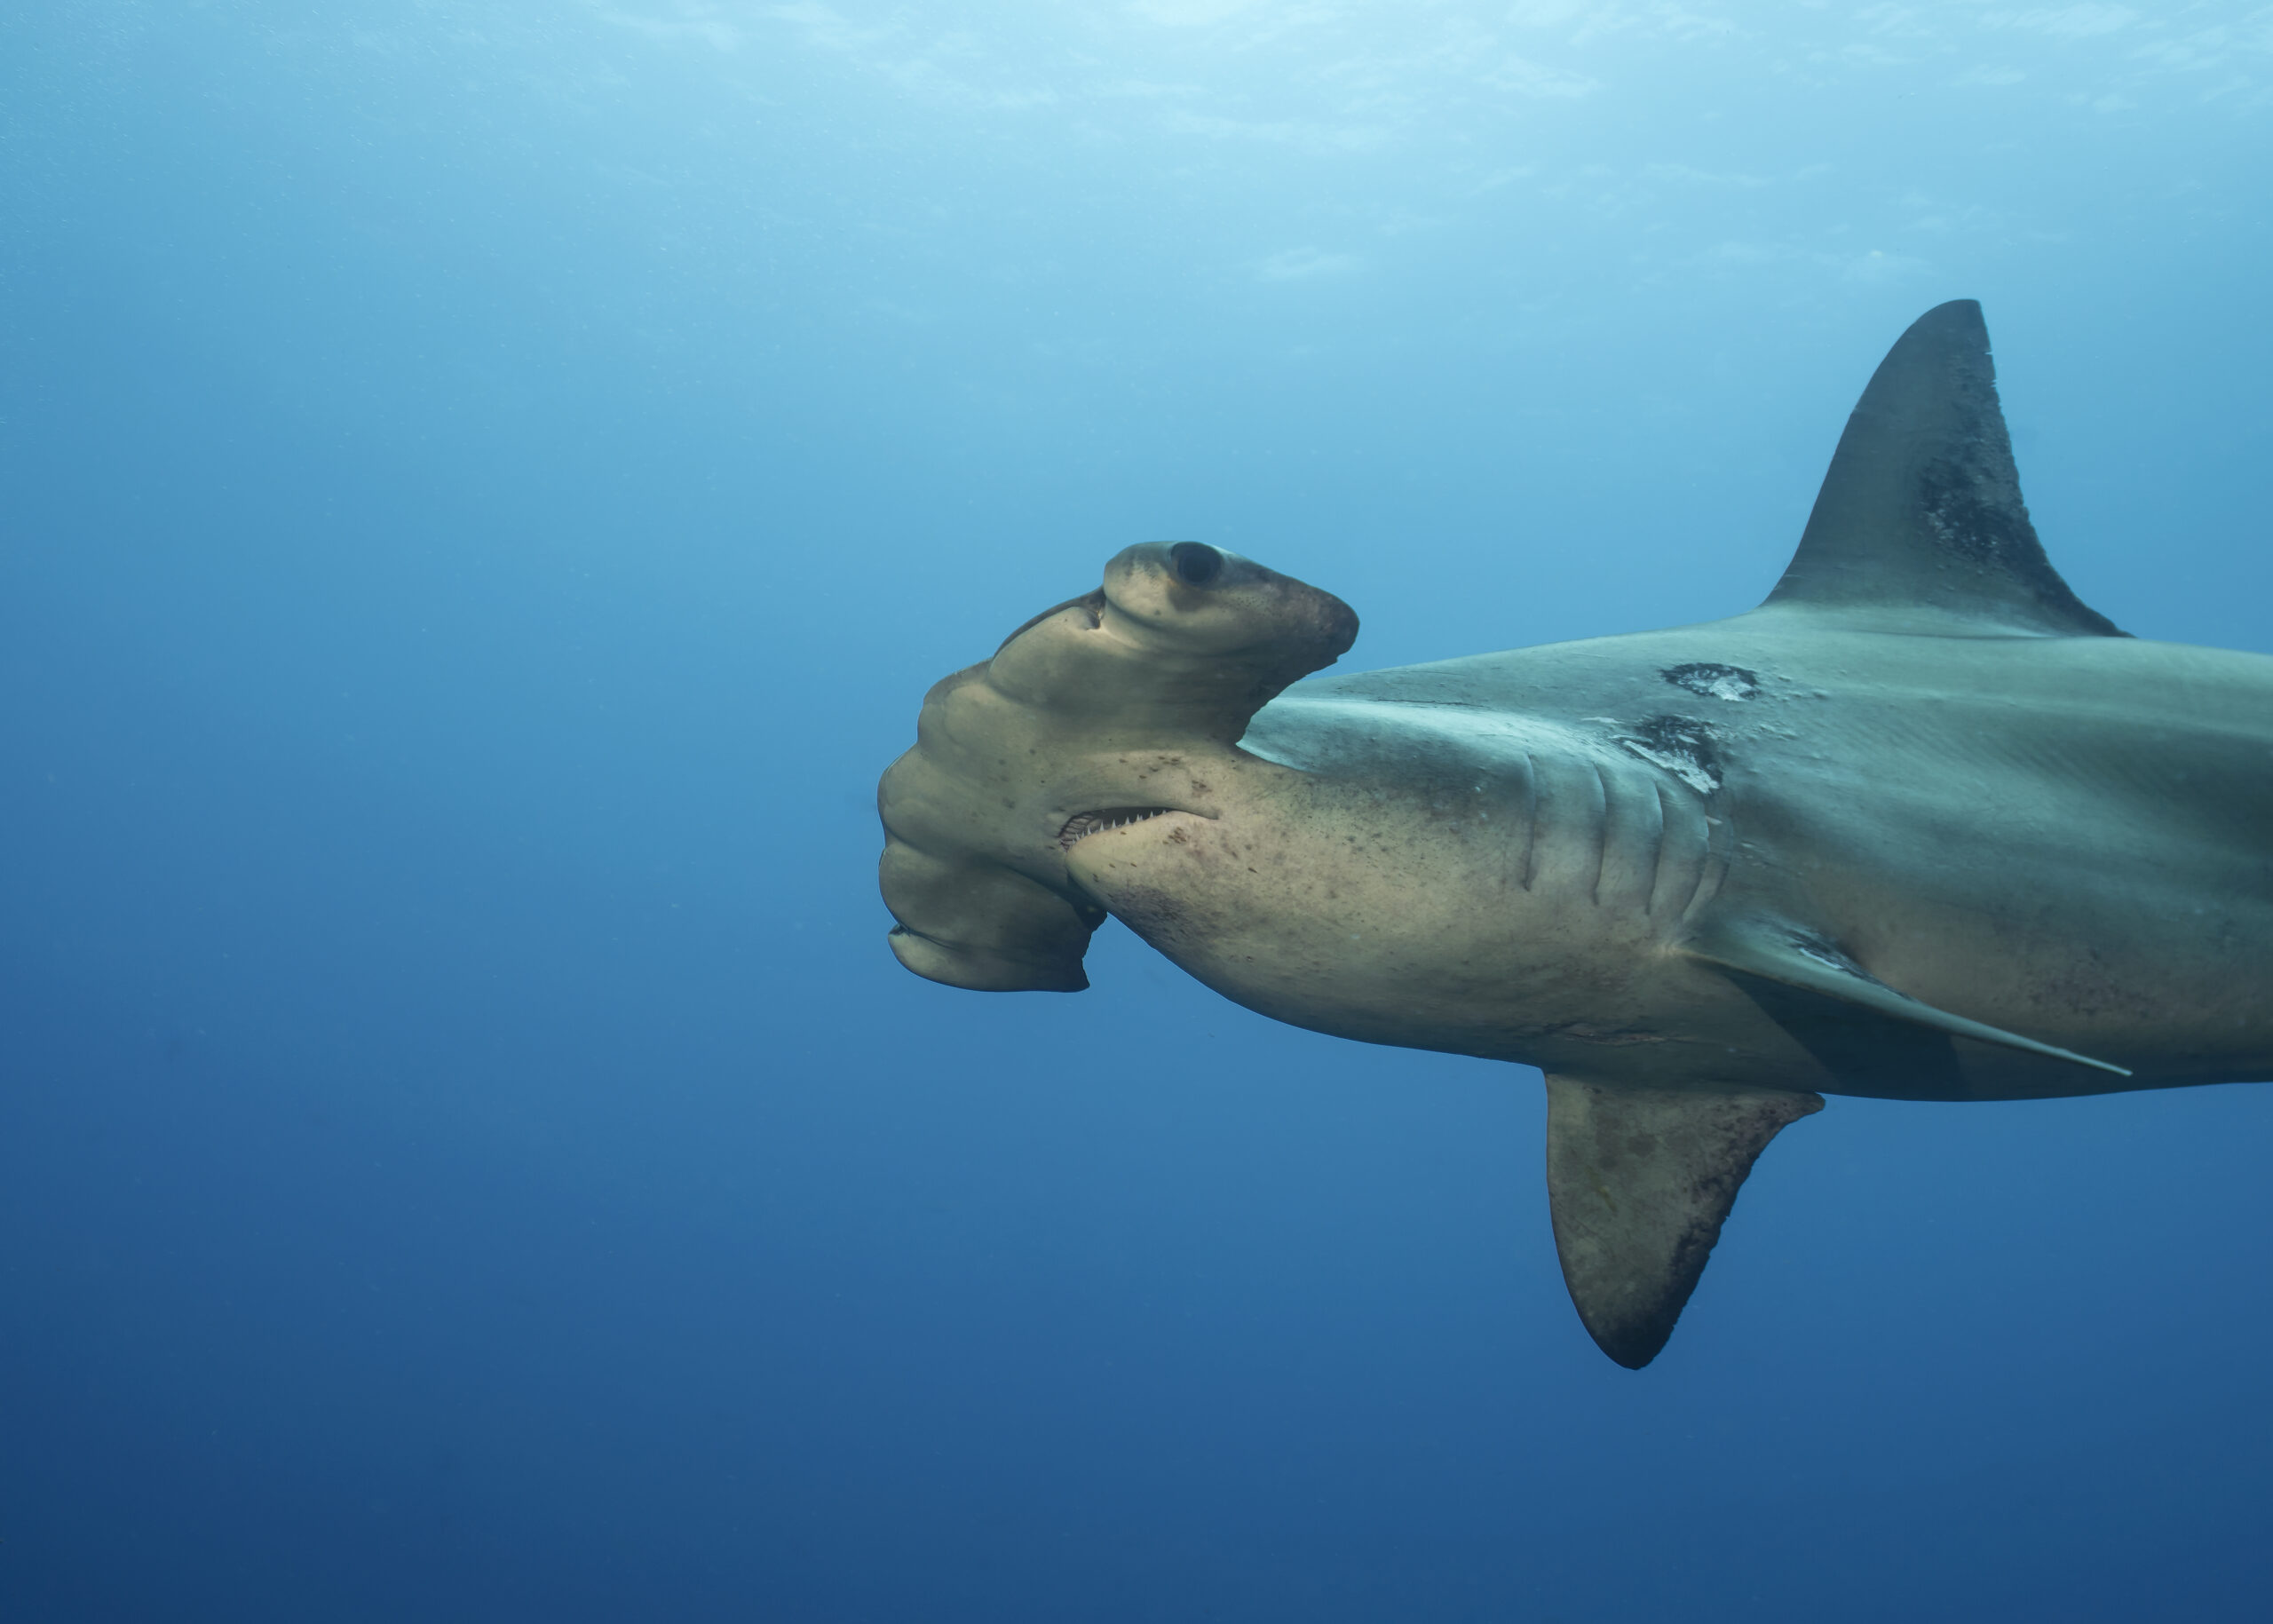 Scalloped Hammerhead Shark Among 10 Species Threatened by Wildlife Trade